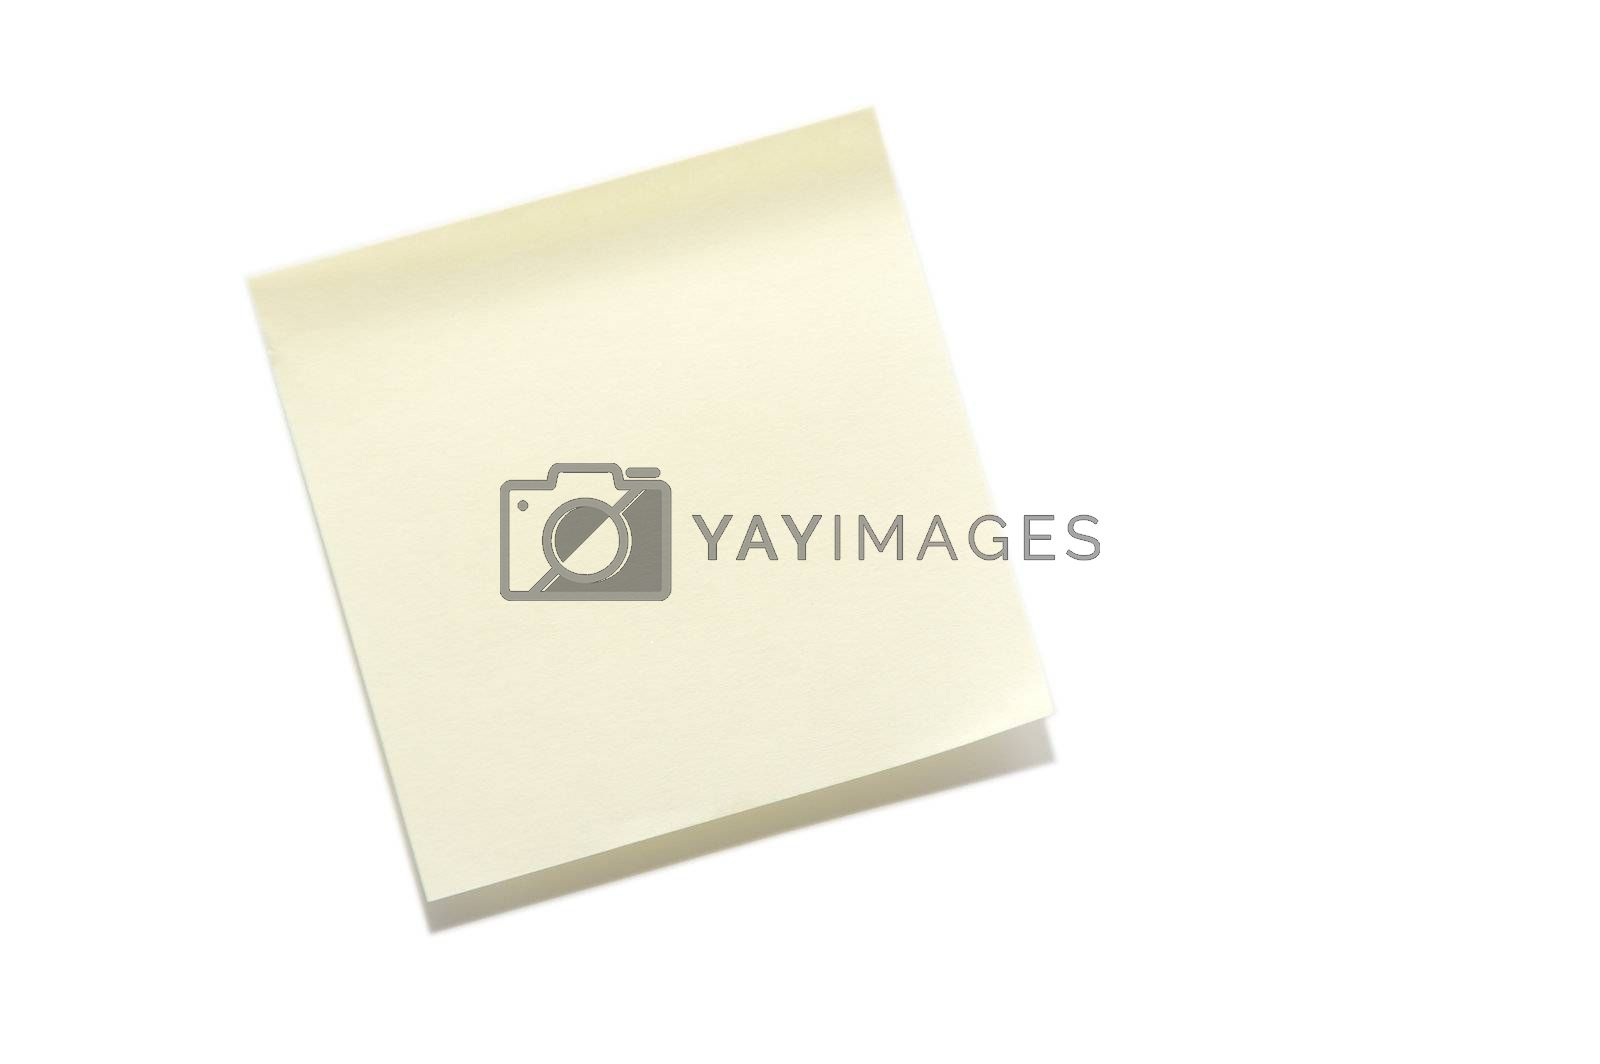 A blank sticky note ready for a message.